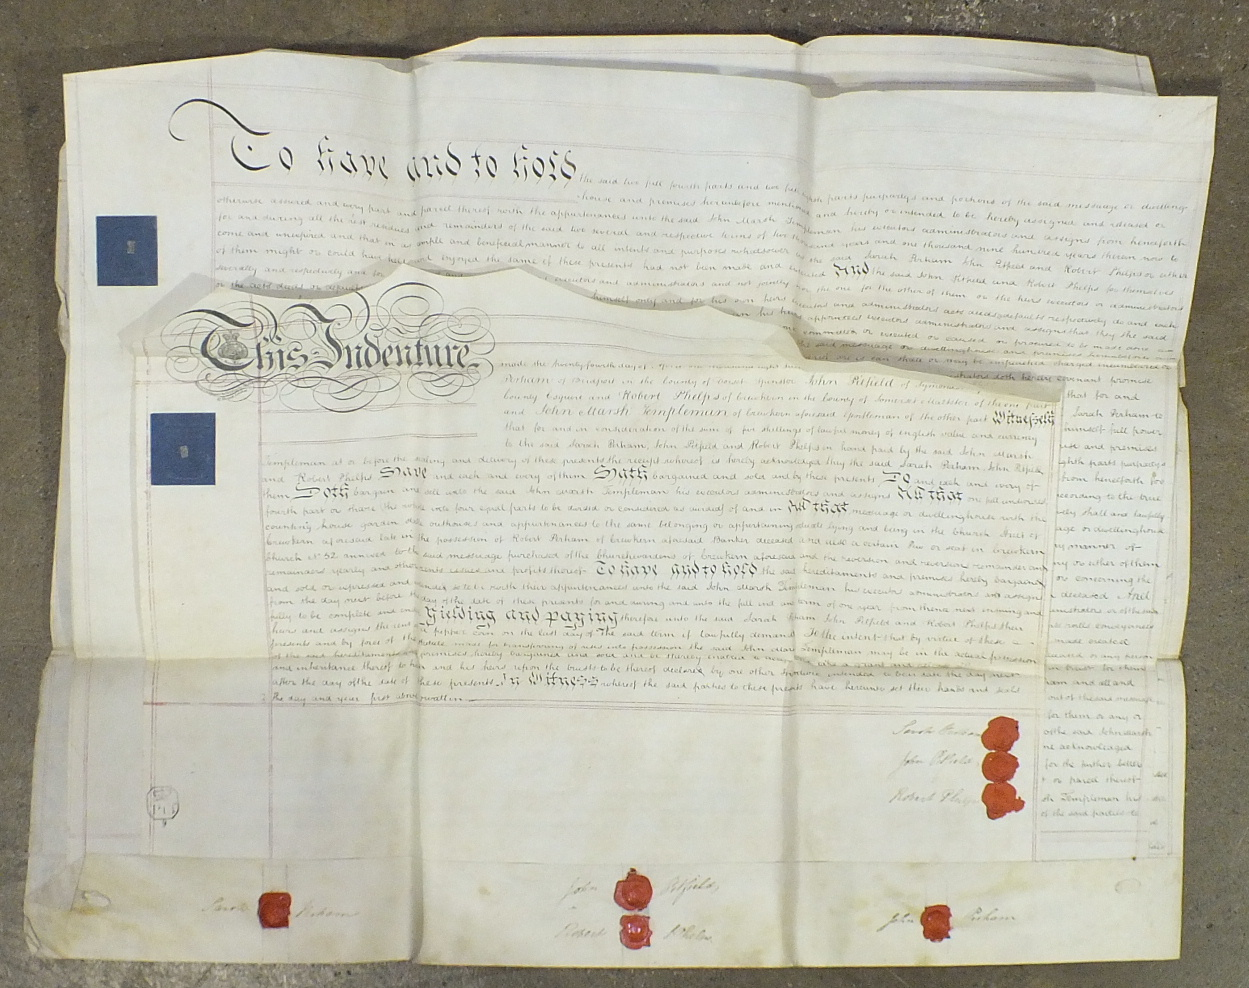 Lot 72 - An early 18th century indenture, written on vellum with wax seals, and four 19th century